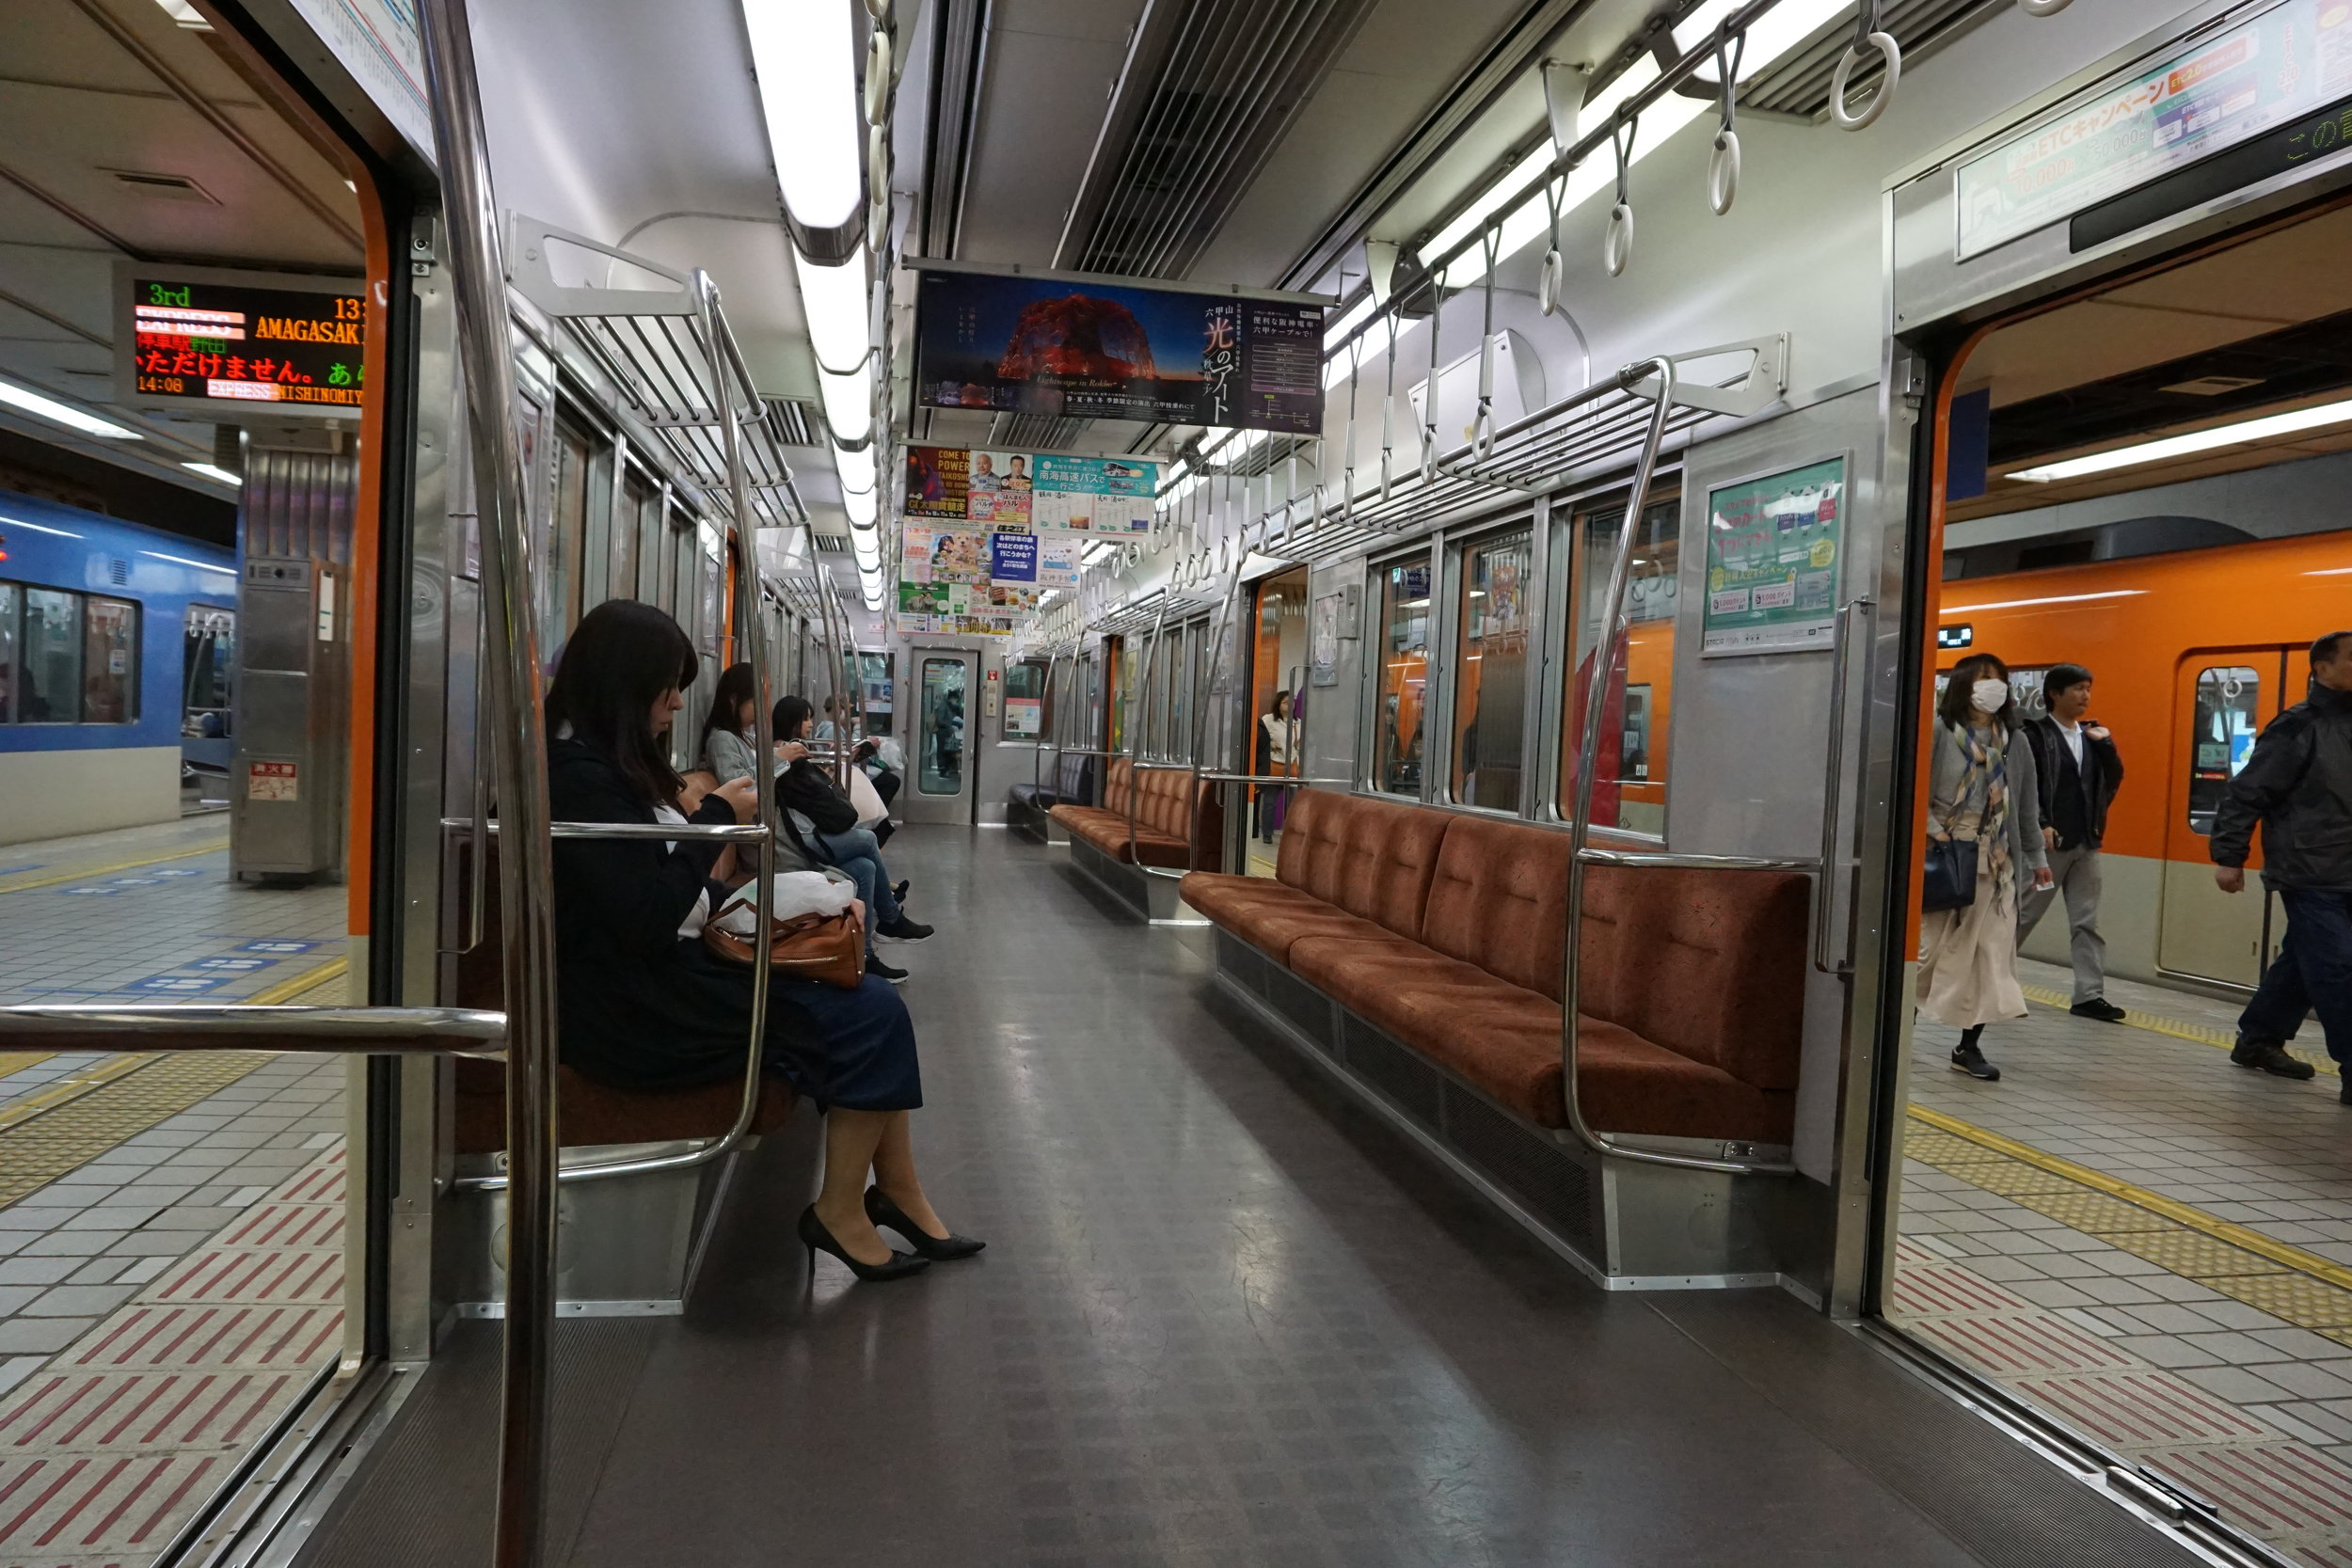 [Image description: photograph of the inside of a train carriage. Only four people are seated inside, all on the left. The doors open onto the platform on both sides of the train. One or two people are walking past the train to the right.]